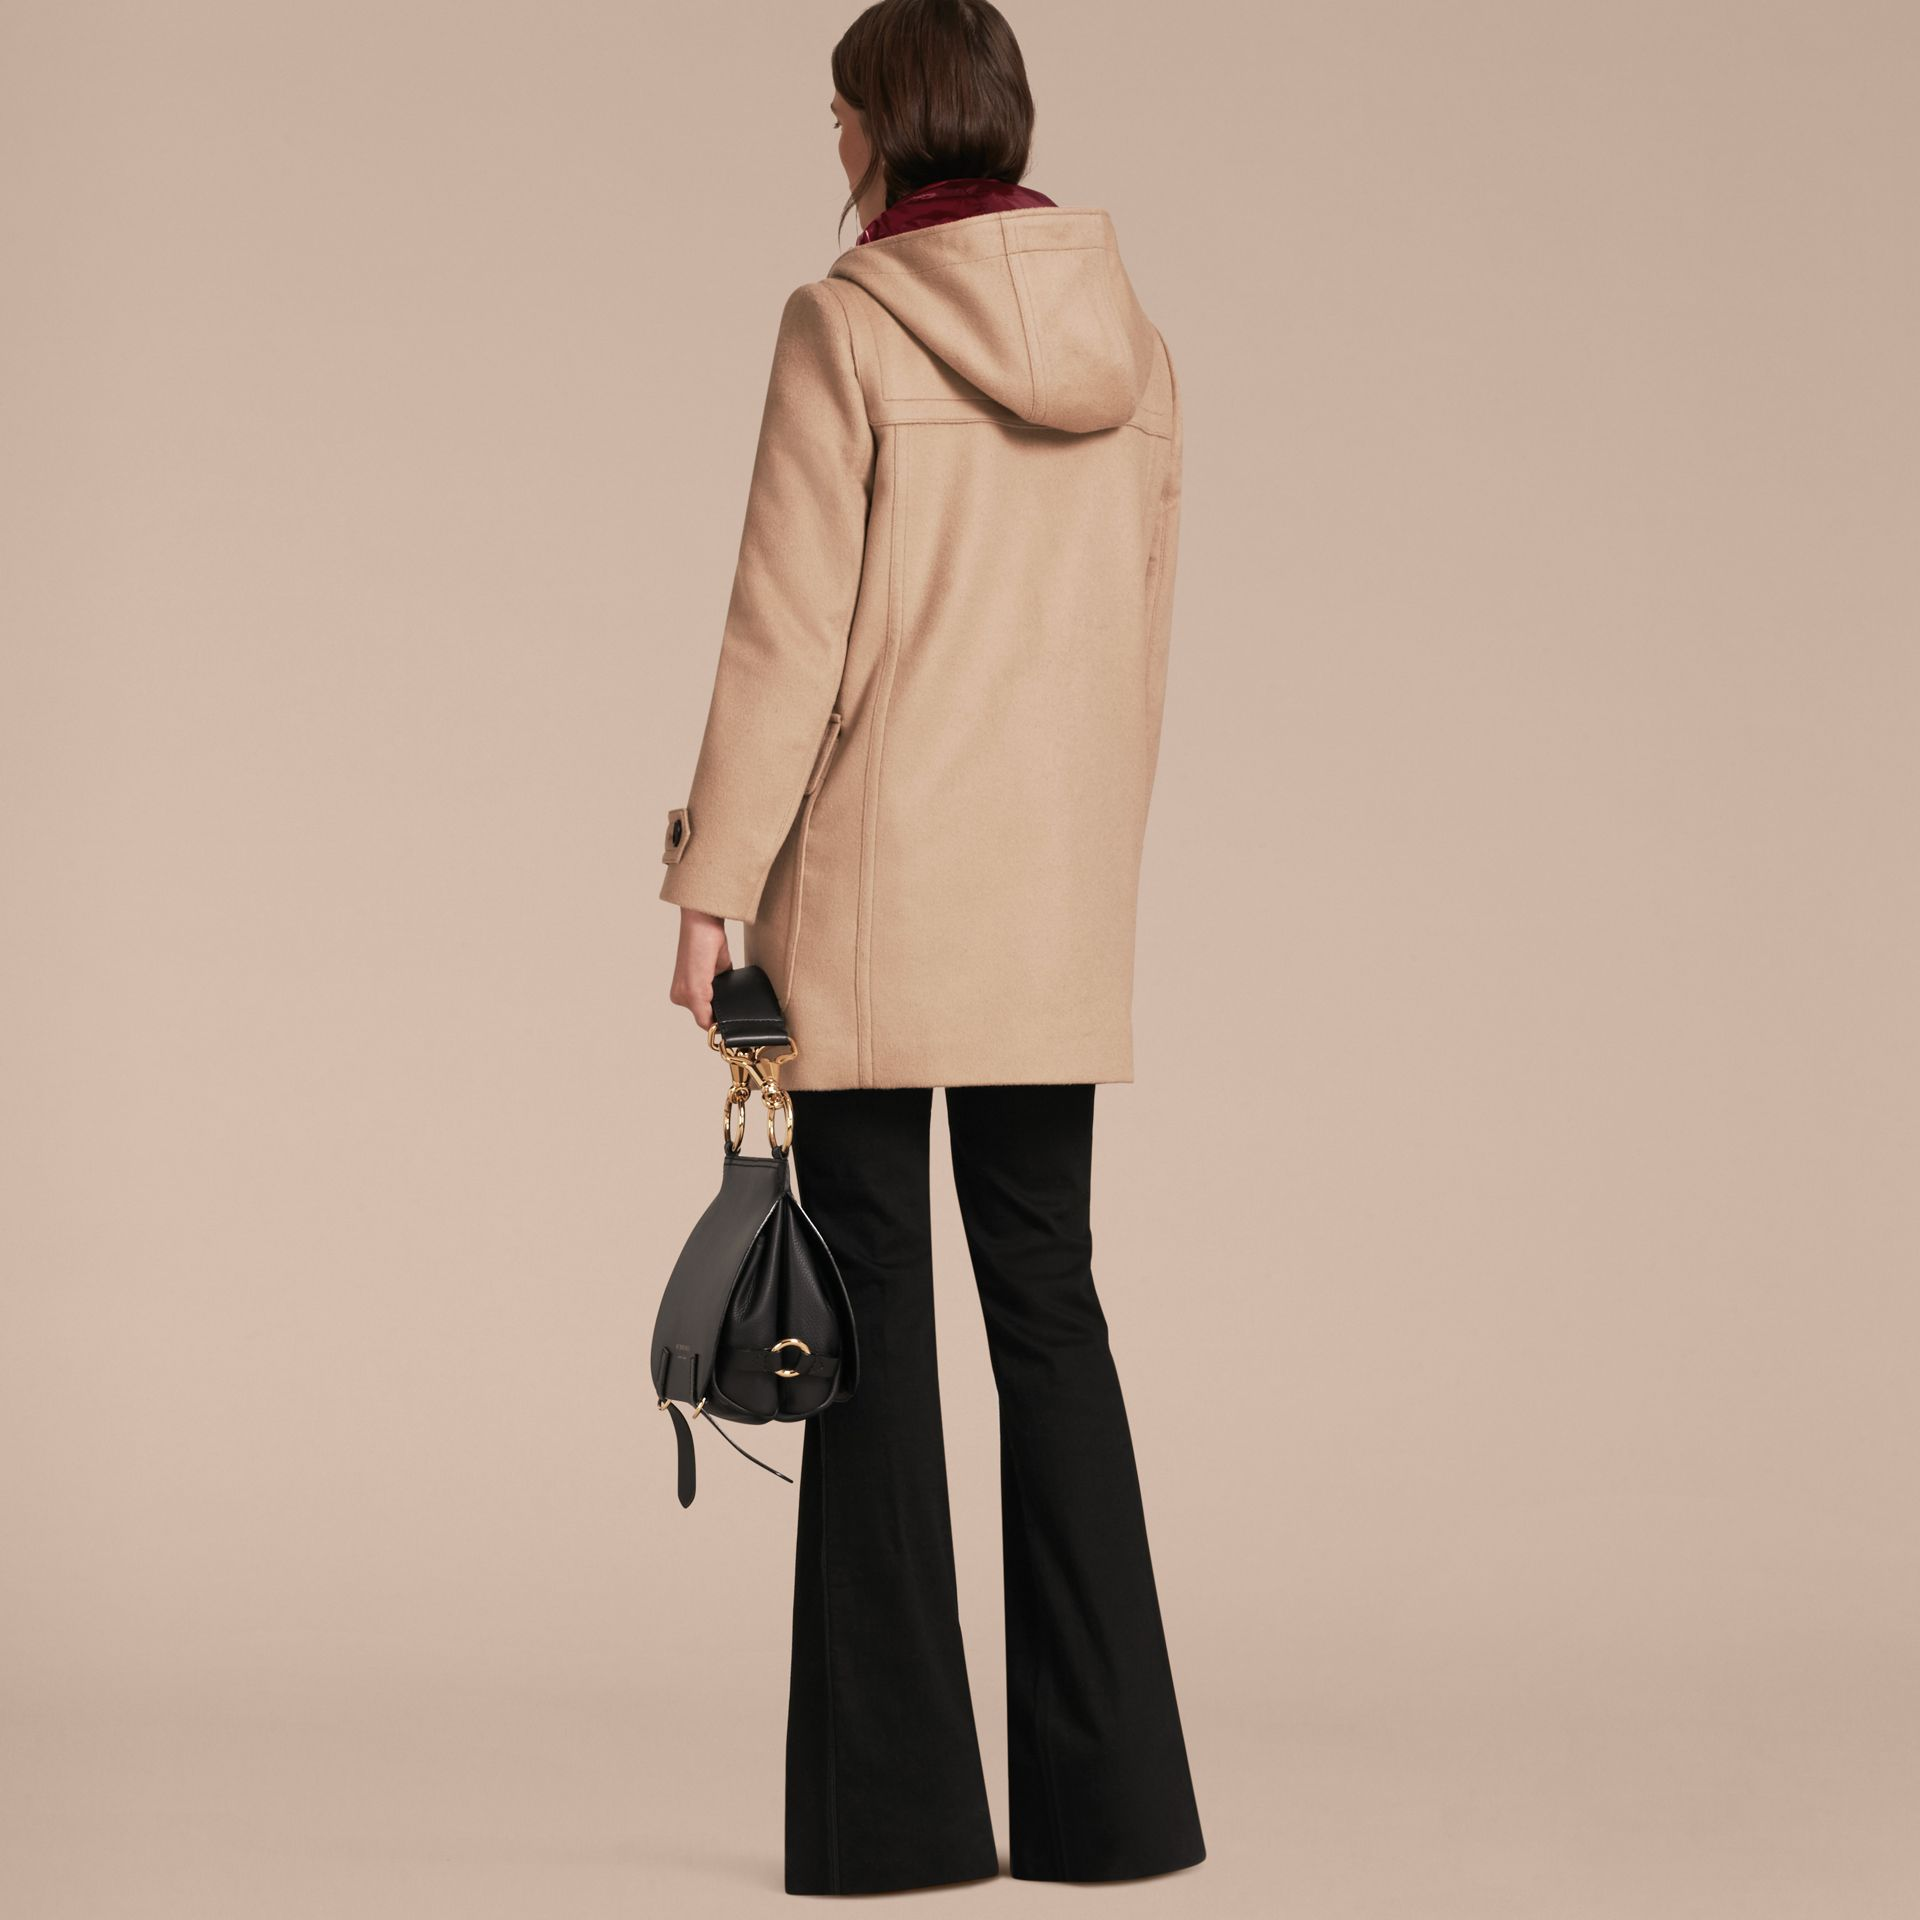 Camel Wool Duffle Coat with Detachable Hooded Down-filled Warmer Camel - ギャラリーイメージ 8